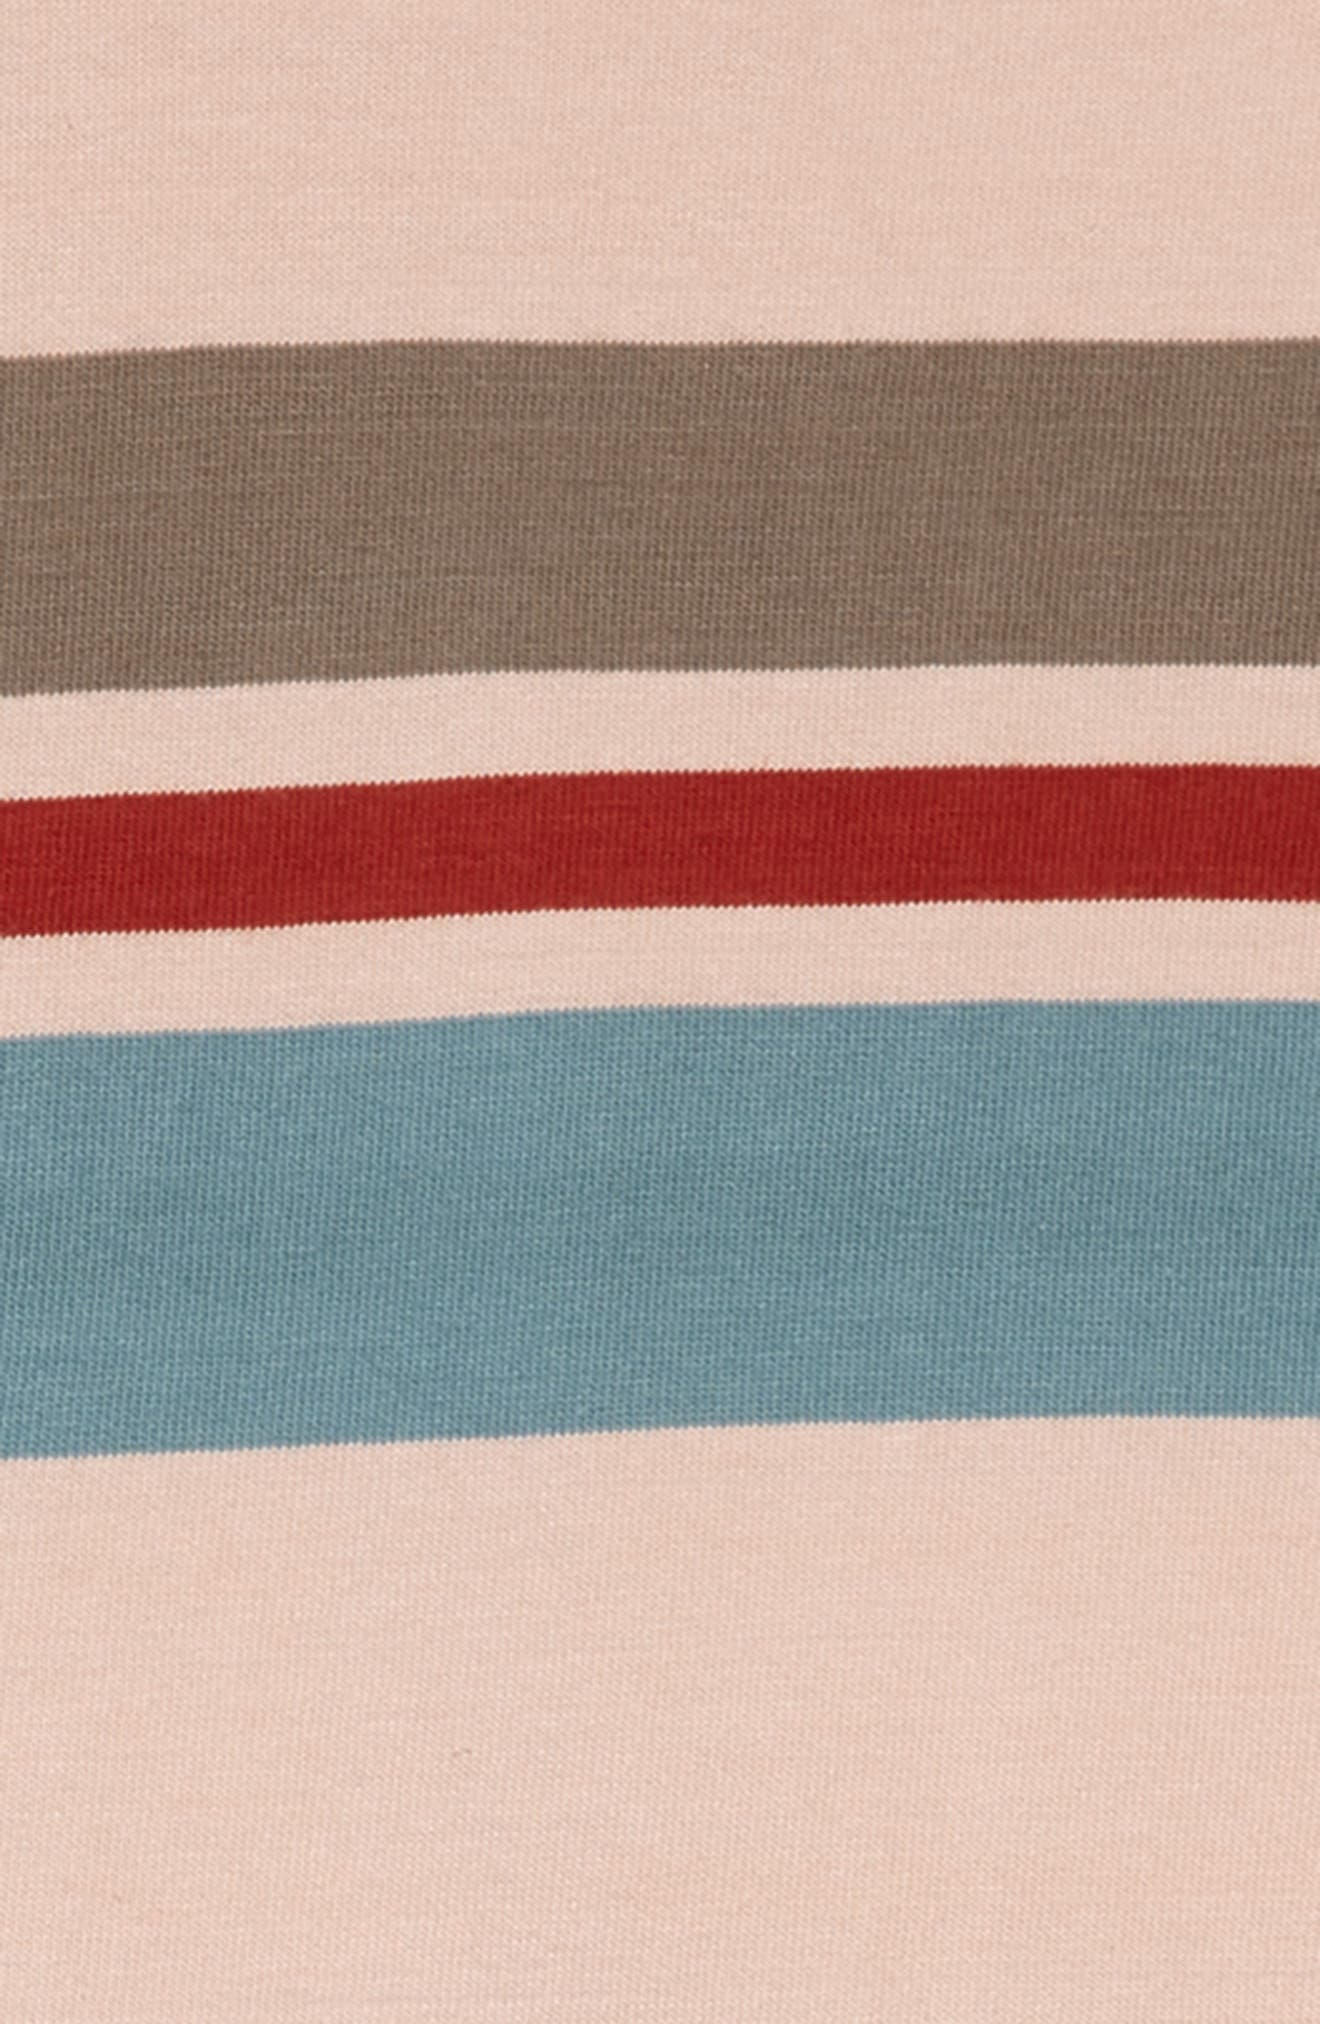 TREASURE & BOND, Rugby Stripe Shirtdress, Alternate thumbnail 3, color, PINK PEACH RUGBY STRIPE